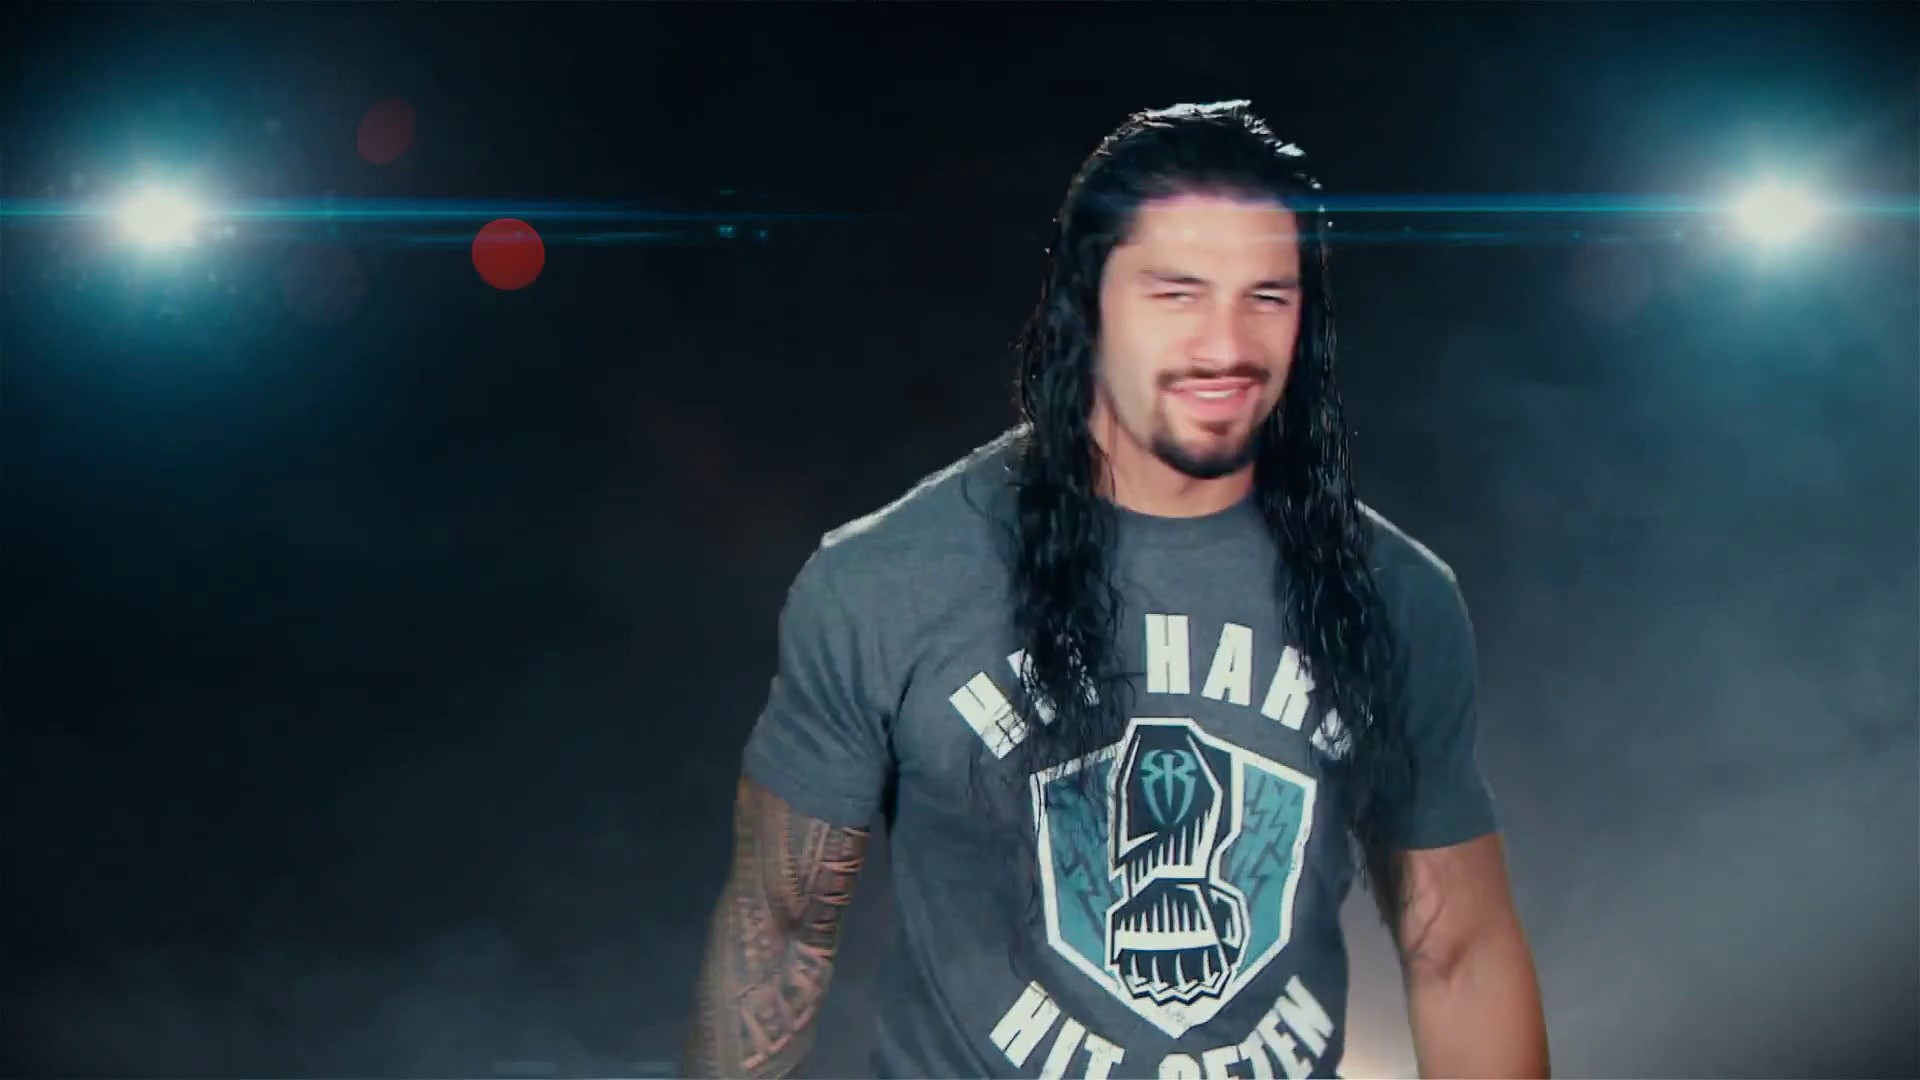 Roman Reigns Wallpaper 84 Images